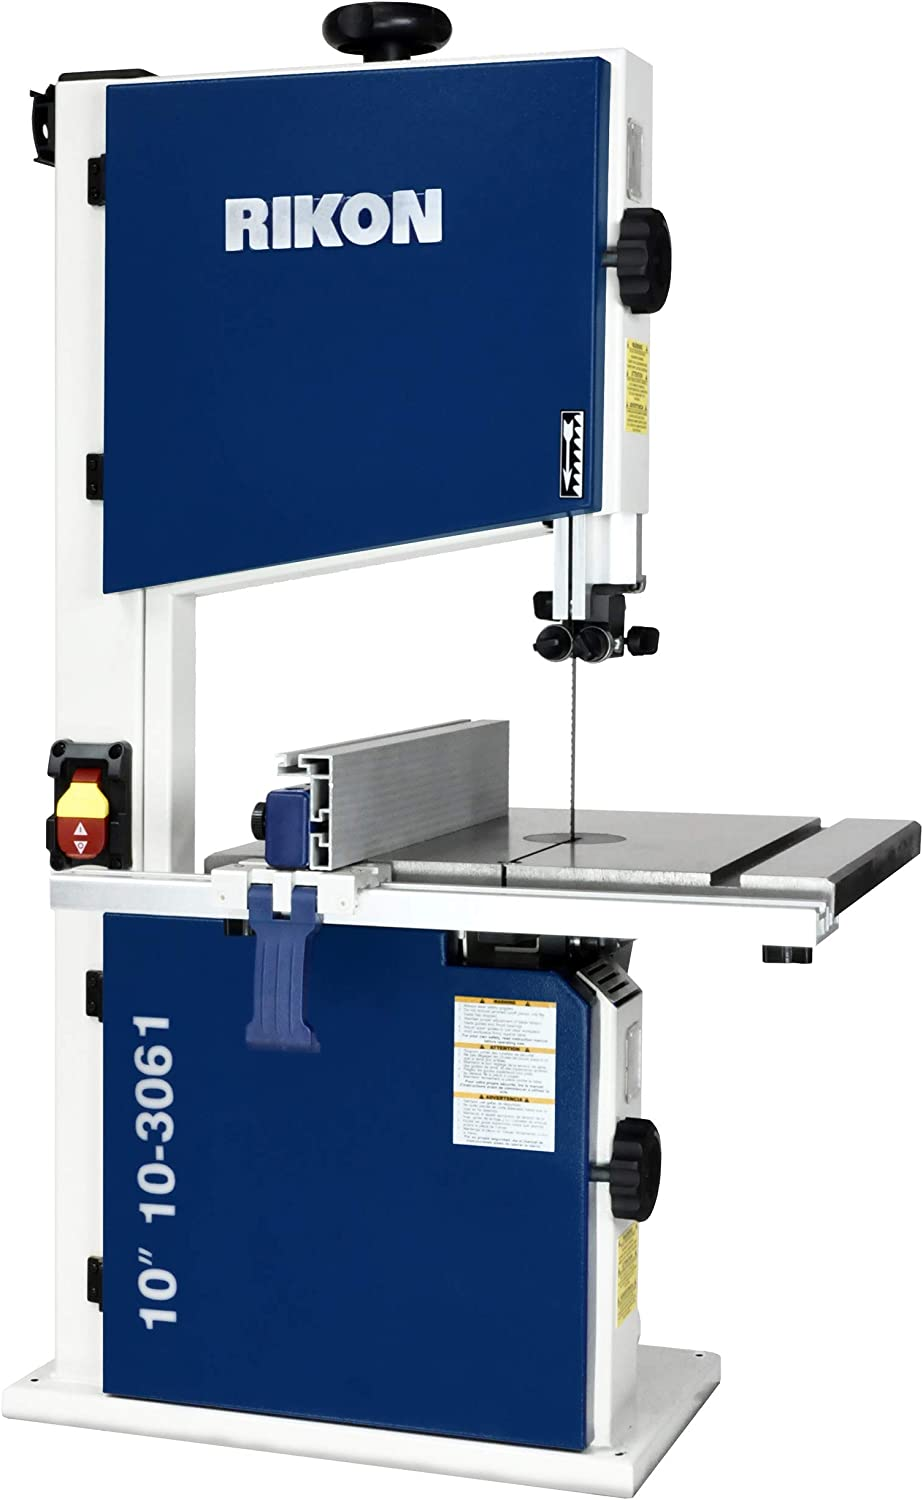 Rikon 10-3061 10-inch Deluxe Bandsaw